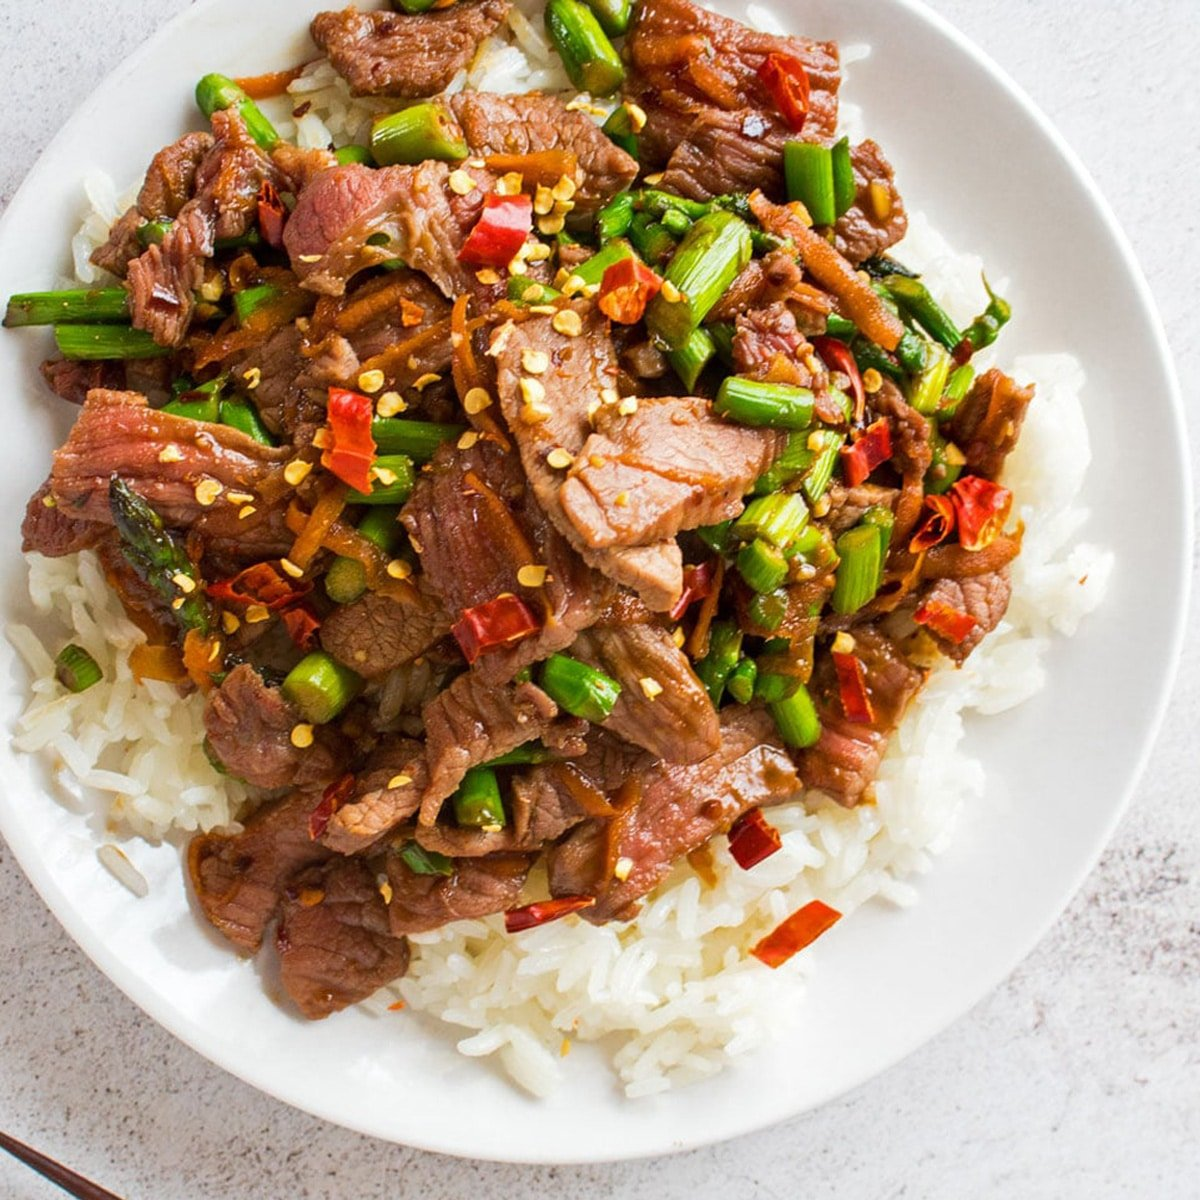 Hunan beef over a bed of white rice, on a white plate.